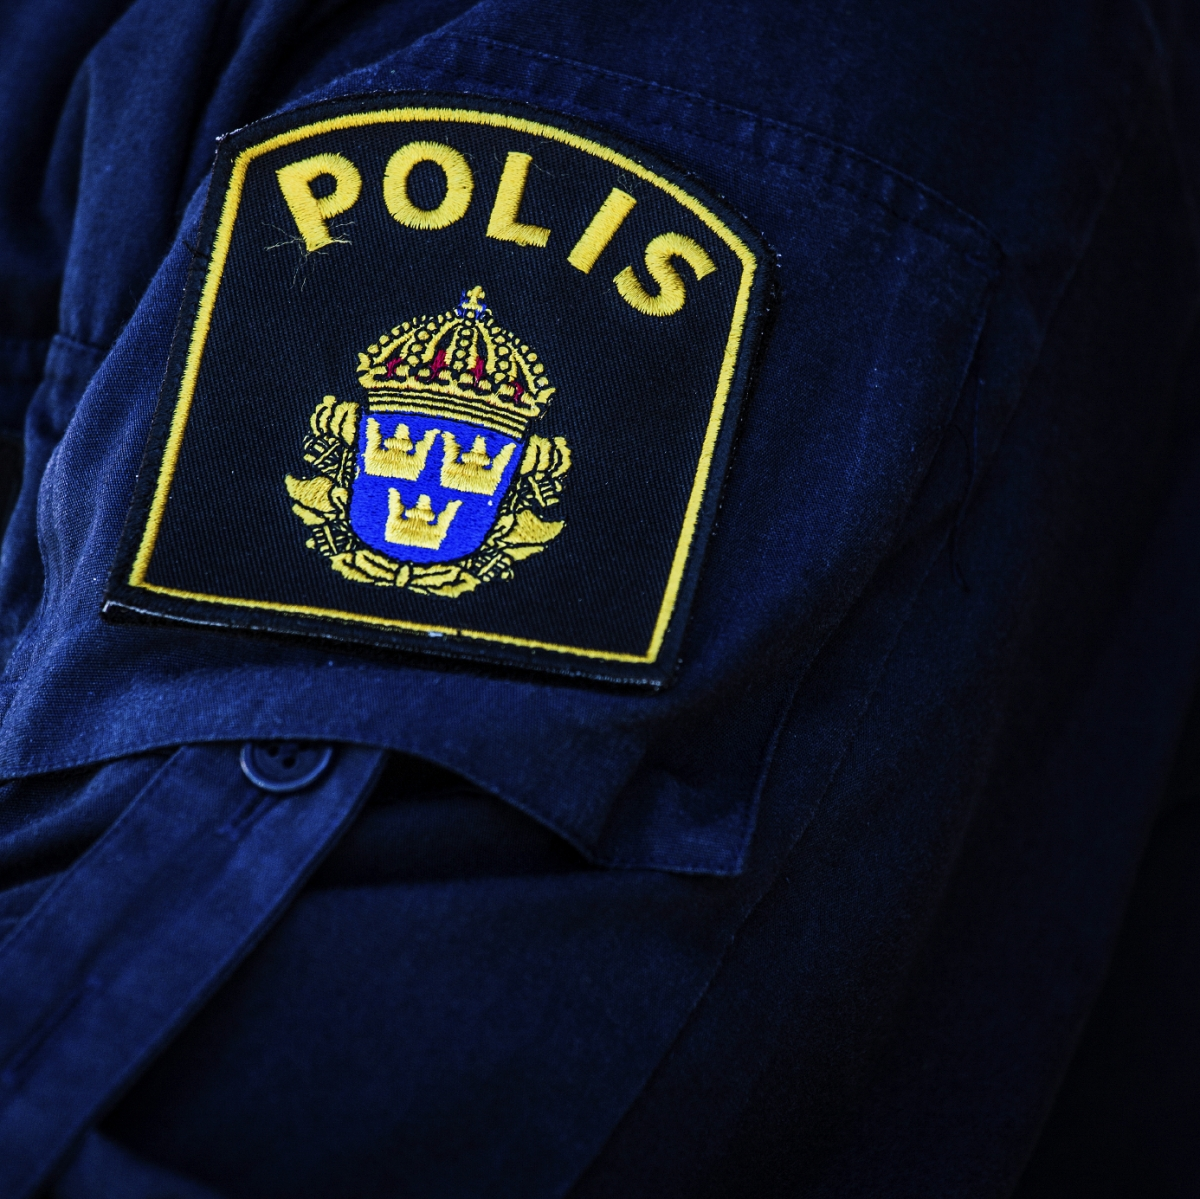 A man in Sweden is charged with